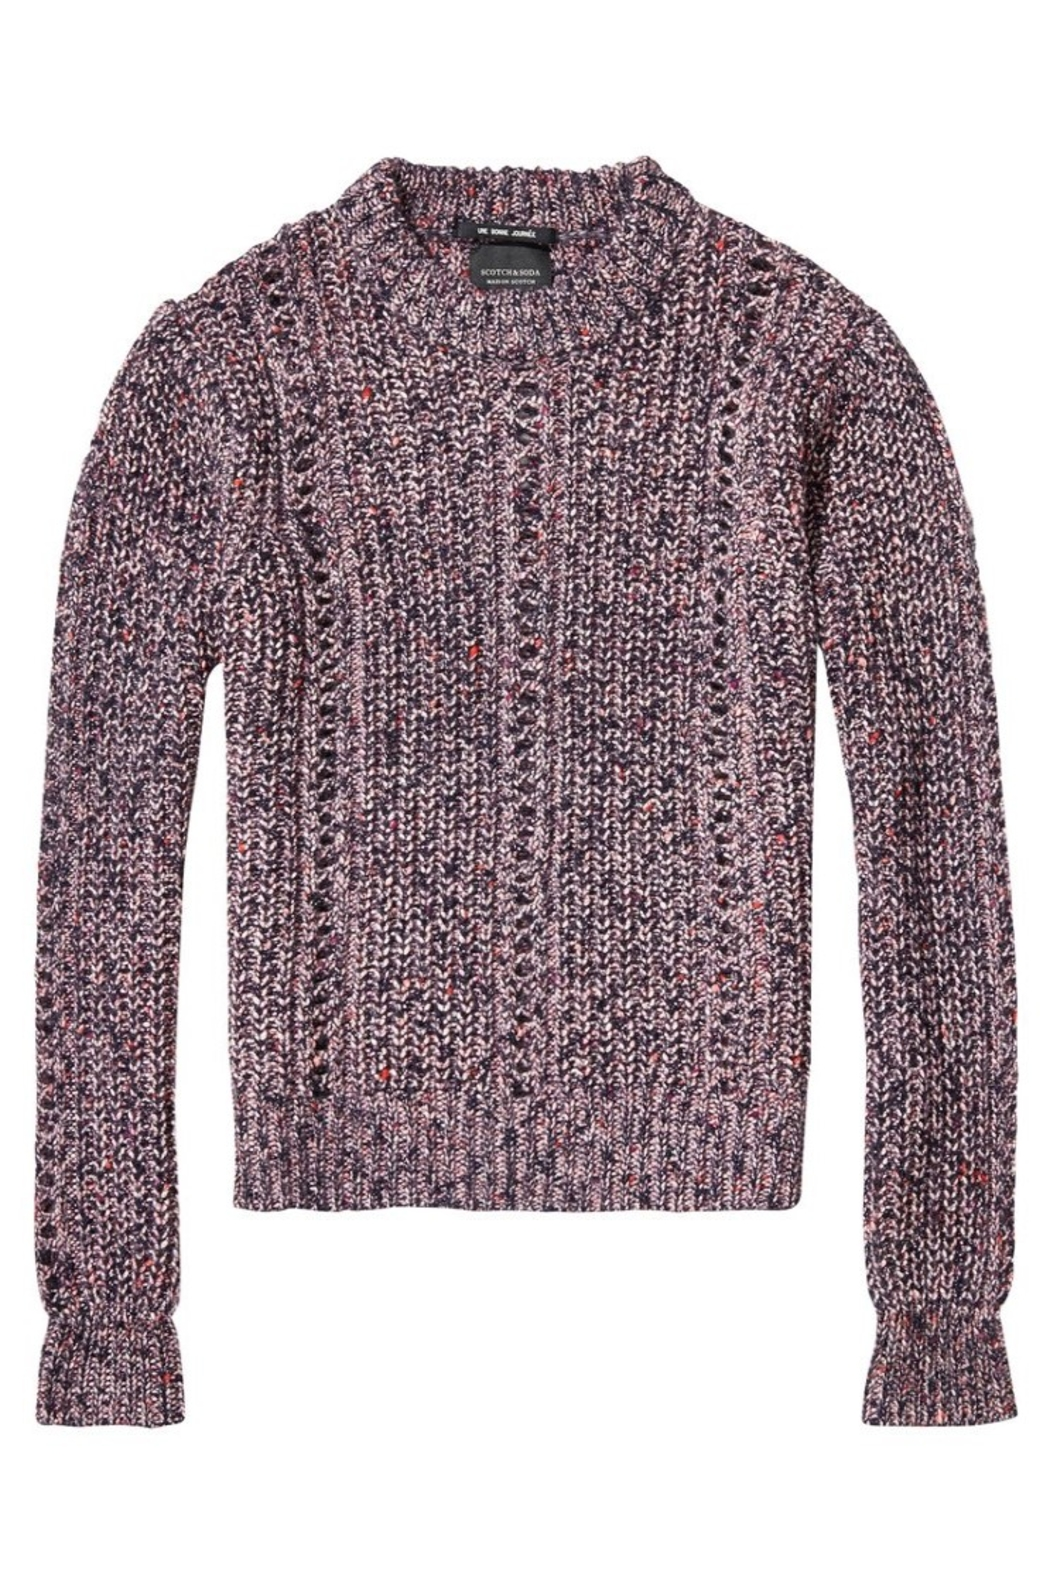 Maison Scotch Multi-Color Crew Sweater - Front Full Image